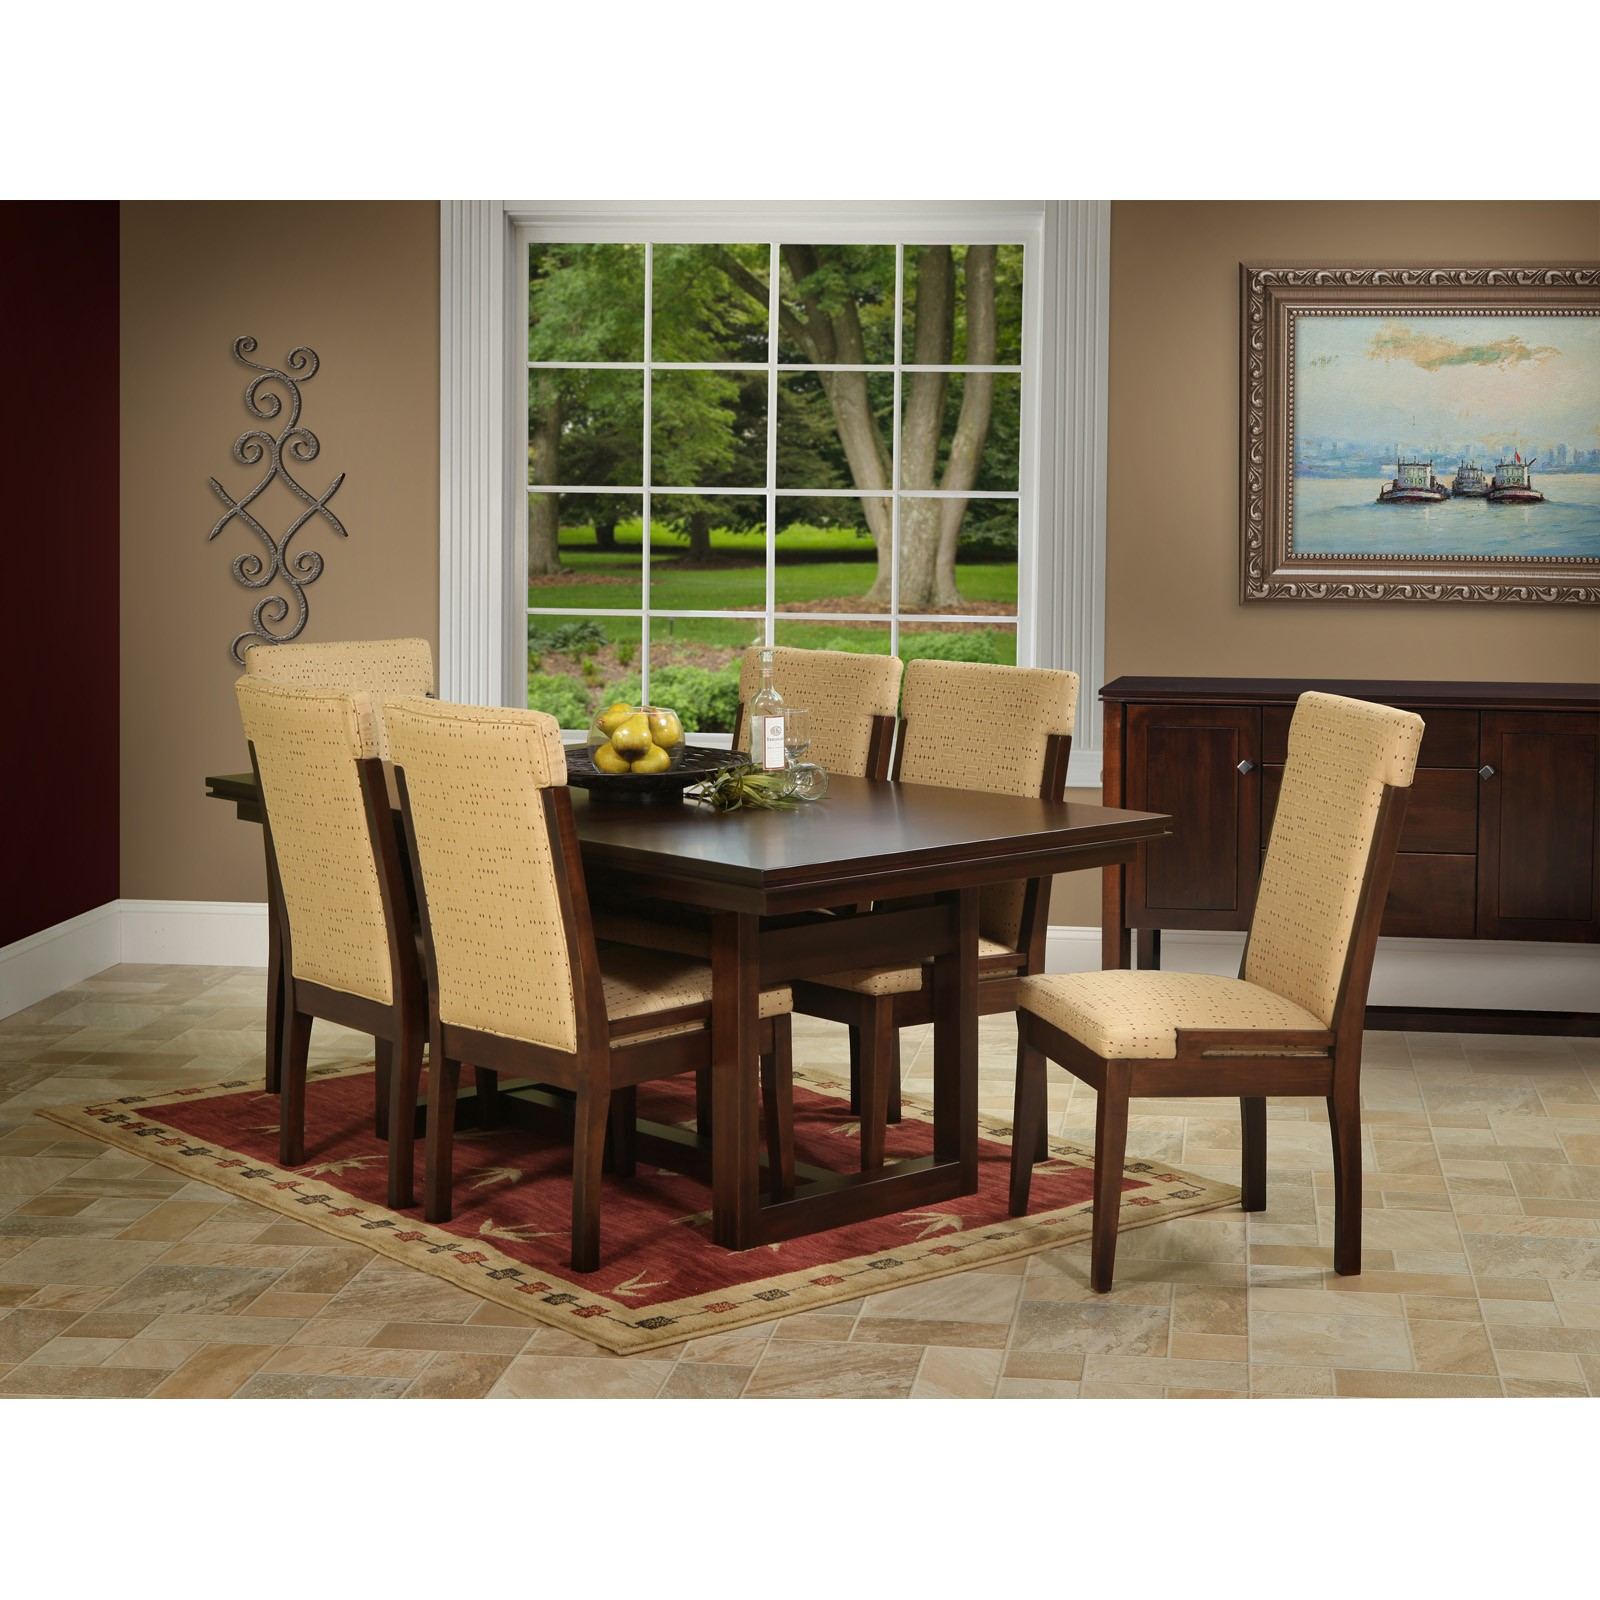 Soho 7 Pc Dining Set By Trailway